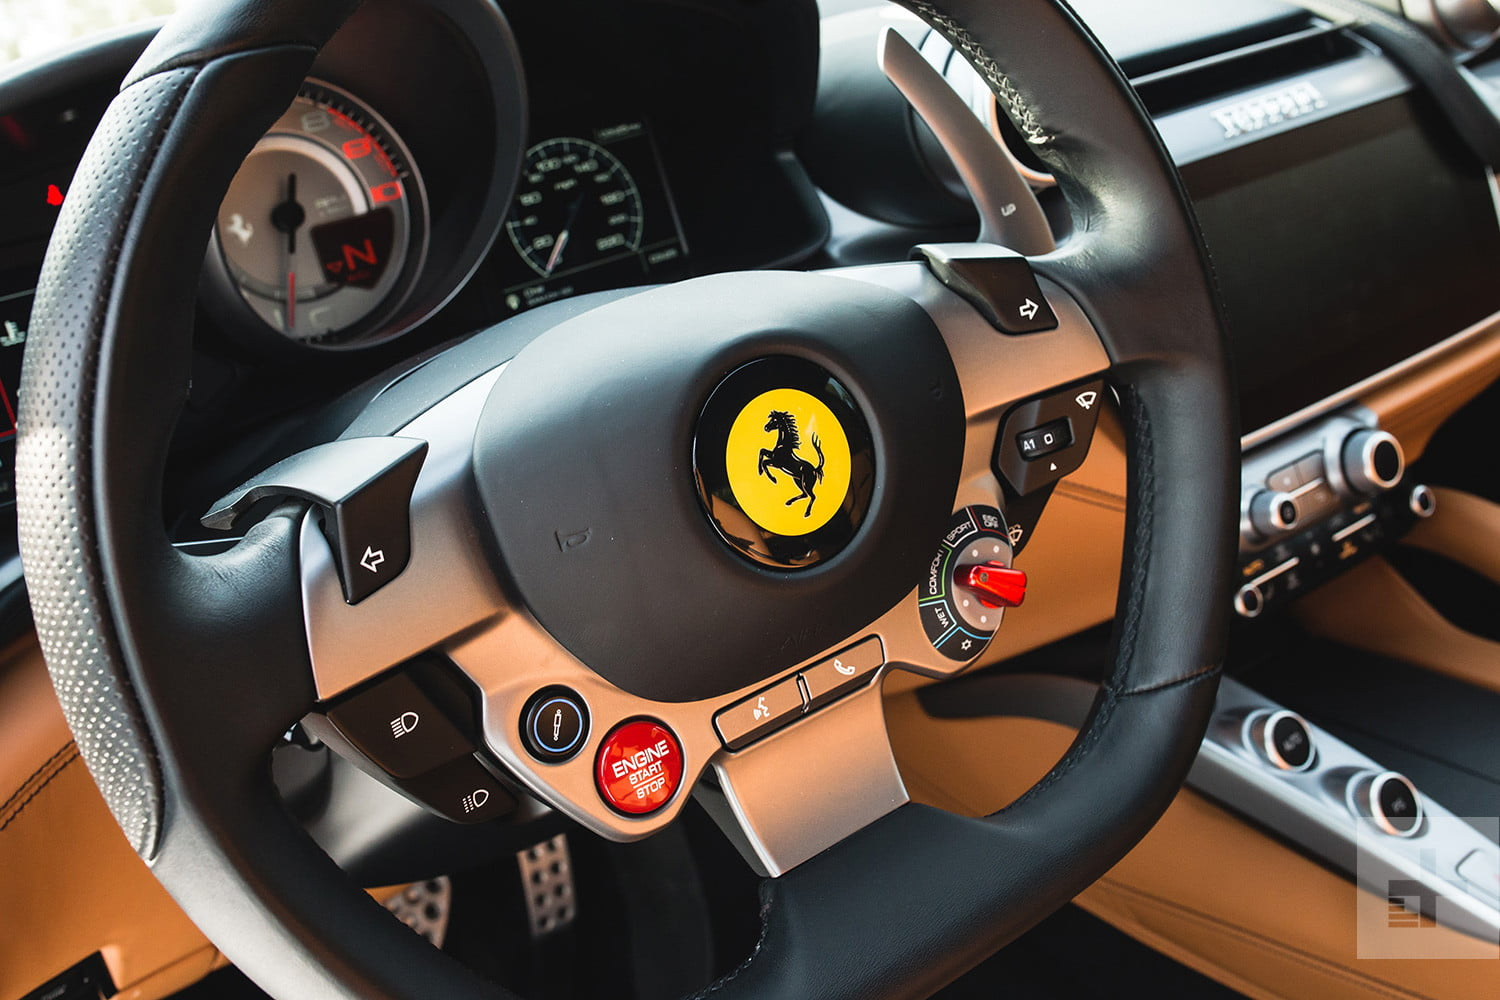 Five crazy technologies in the 2018 ferrari gtc4lusso for Benetton 4 wheel steering